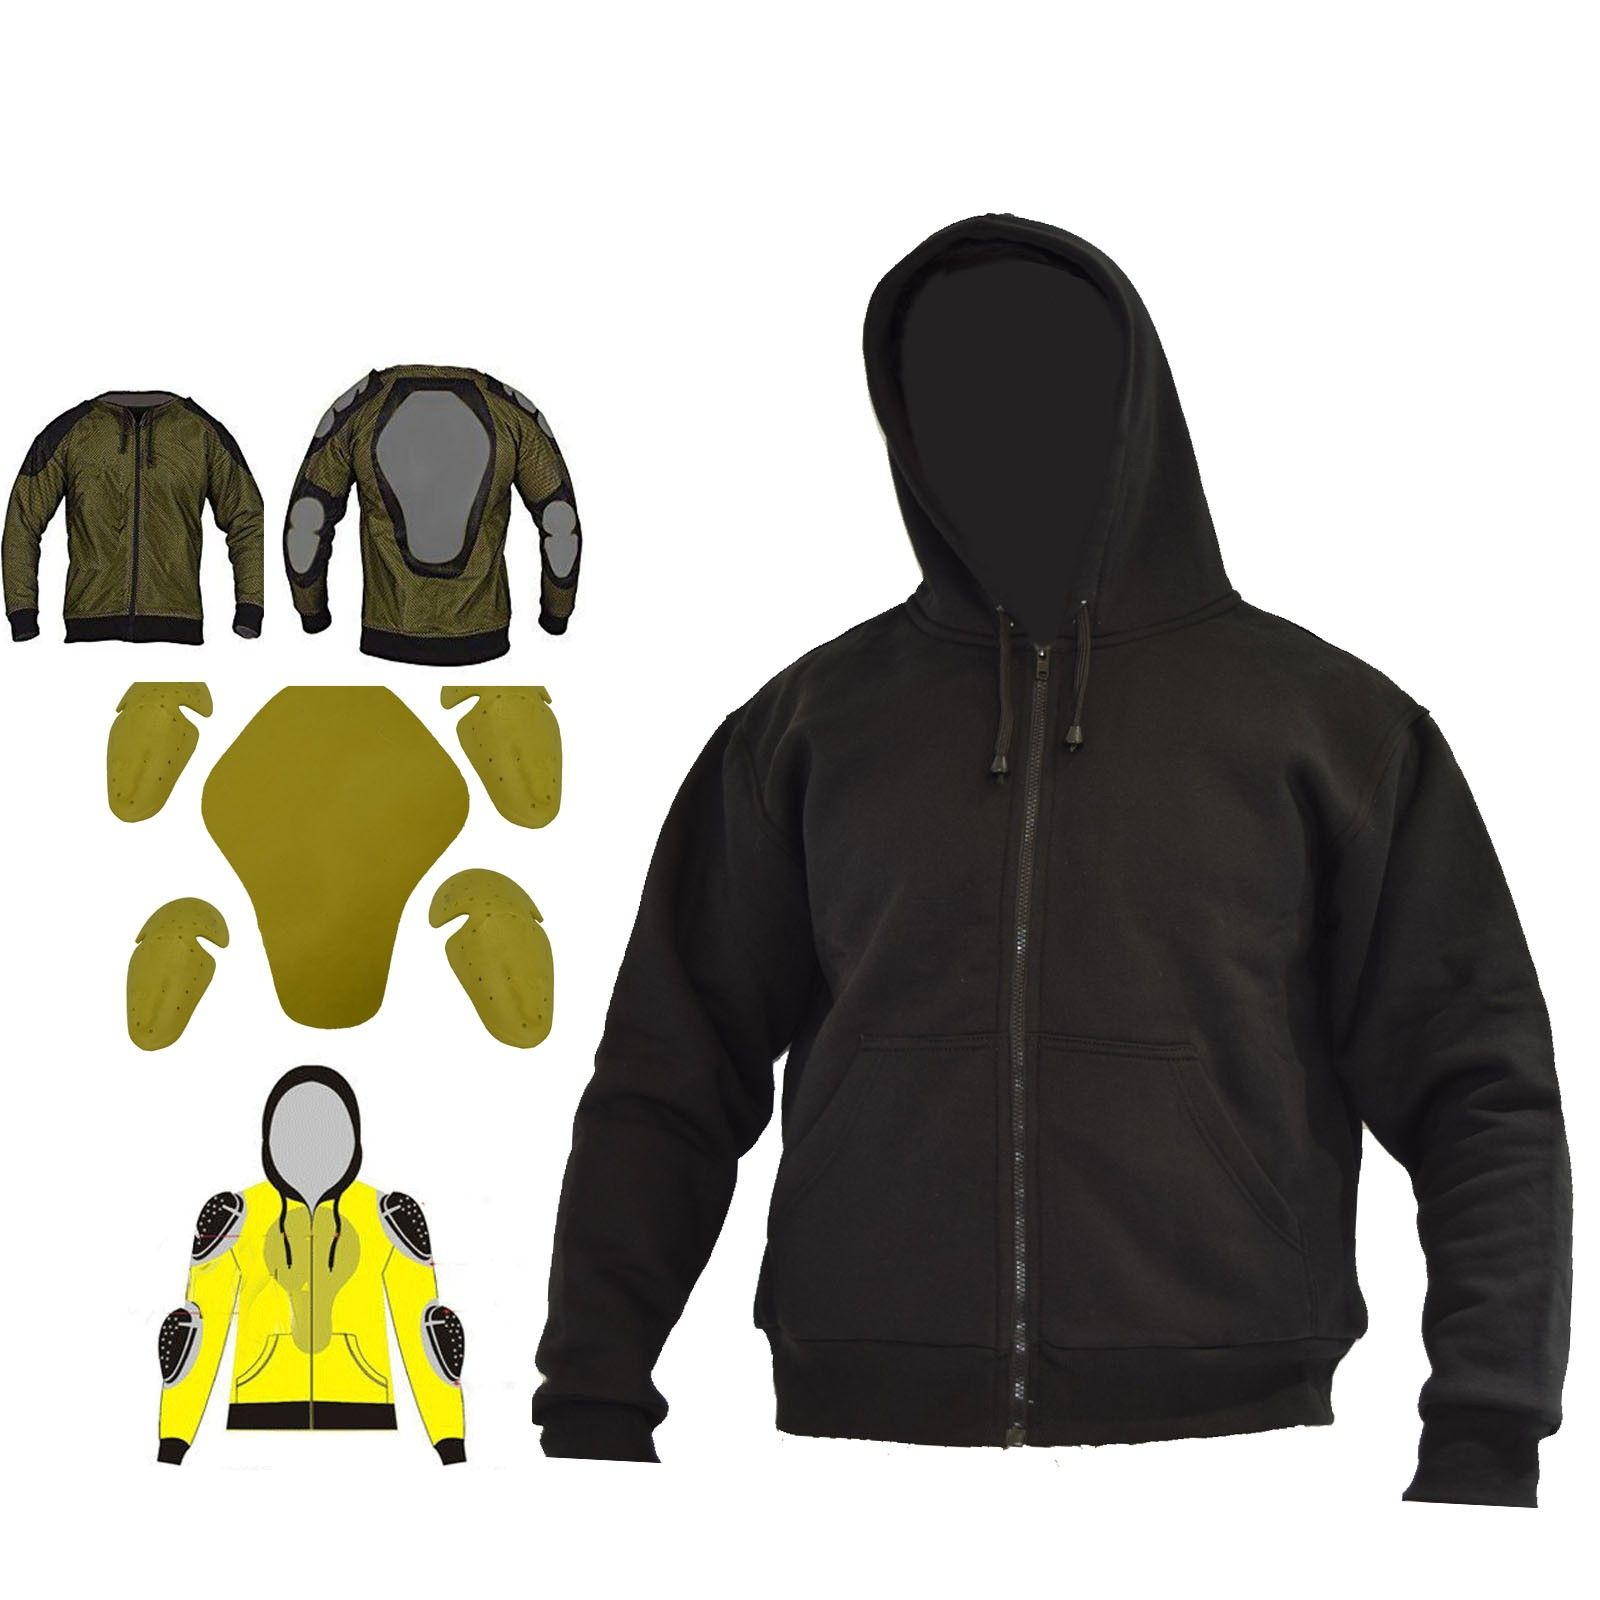 Motorcycle Mens Made With Kevlar Hoodie Full Protective Armoured Lined Hood